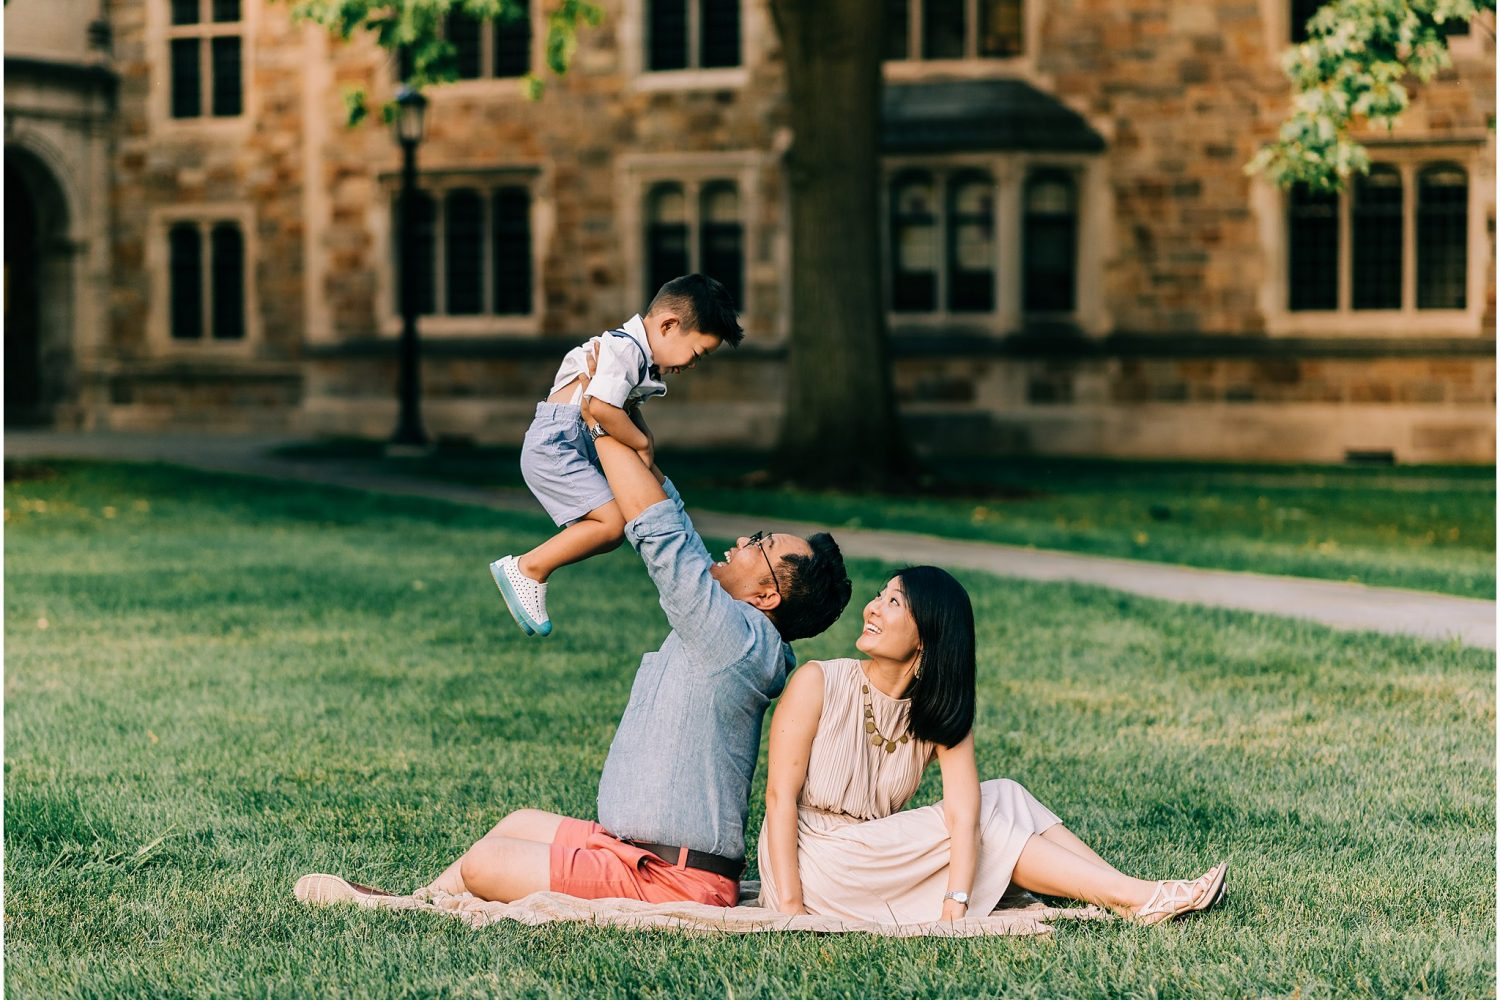 Family of three at The Quad, University of Michigan